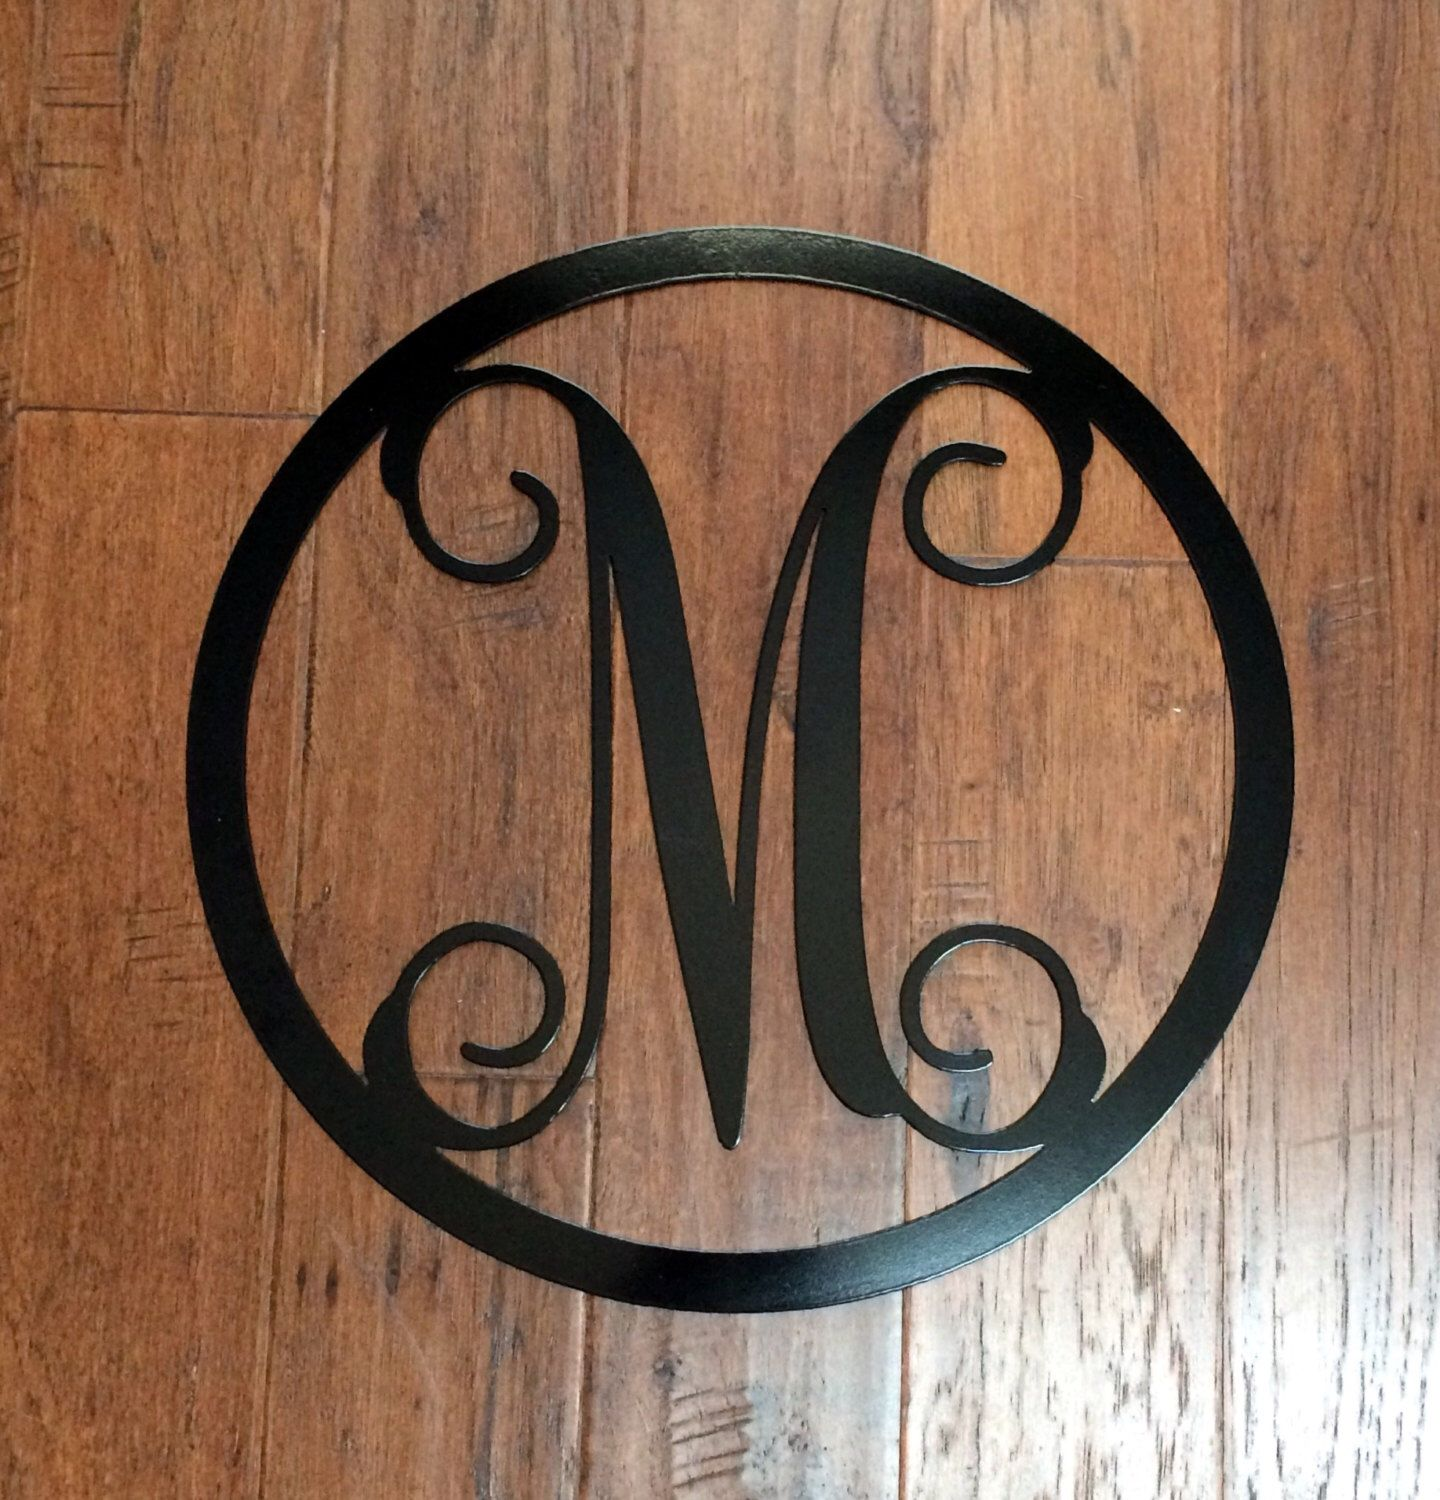 metal monogram letter with circle border wreath doorwall hanginginitial